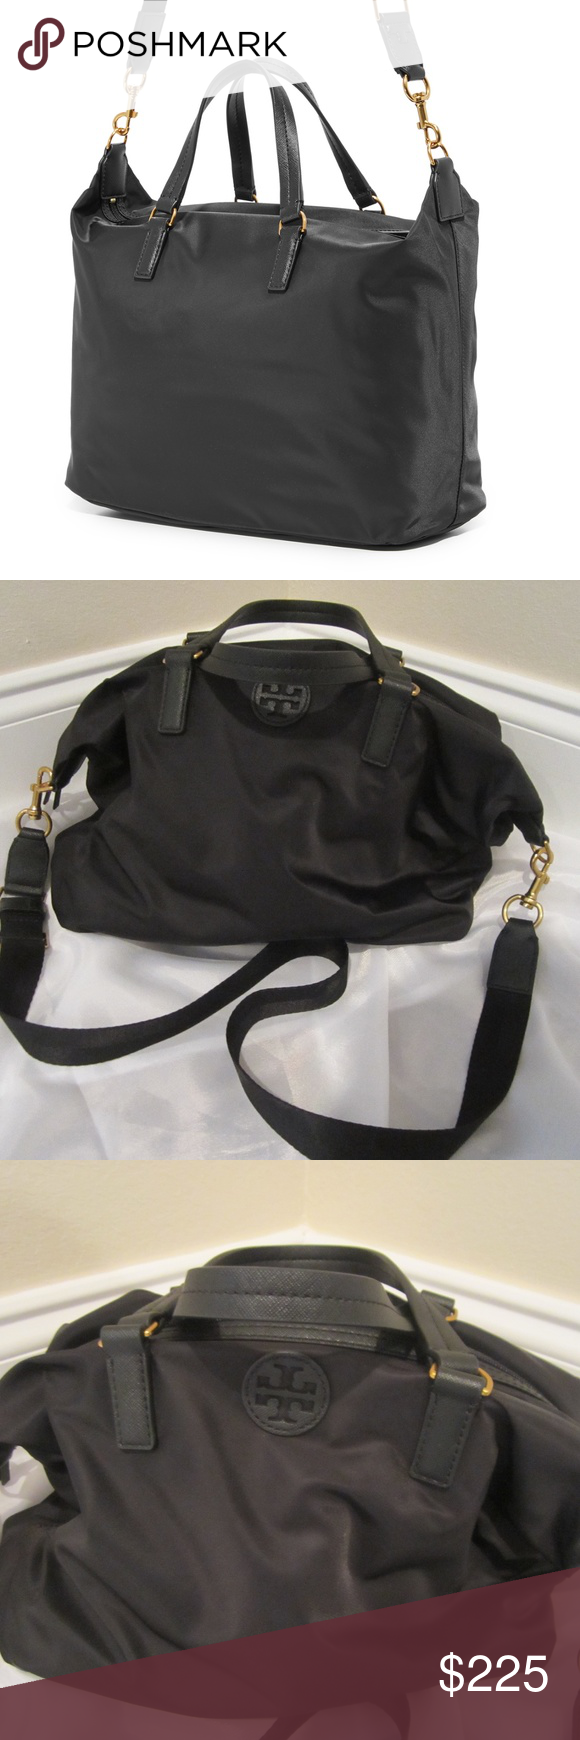 51fc3590a2 Tory Burch Scout Nylon Slouchy Satchel Black with gold trim Tory Burch  Scout Nylon Slouchy Satchel. Shows as brand new - inside hardware still  wrapped in ...